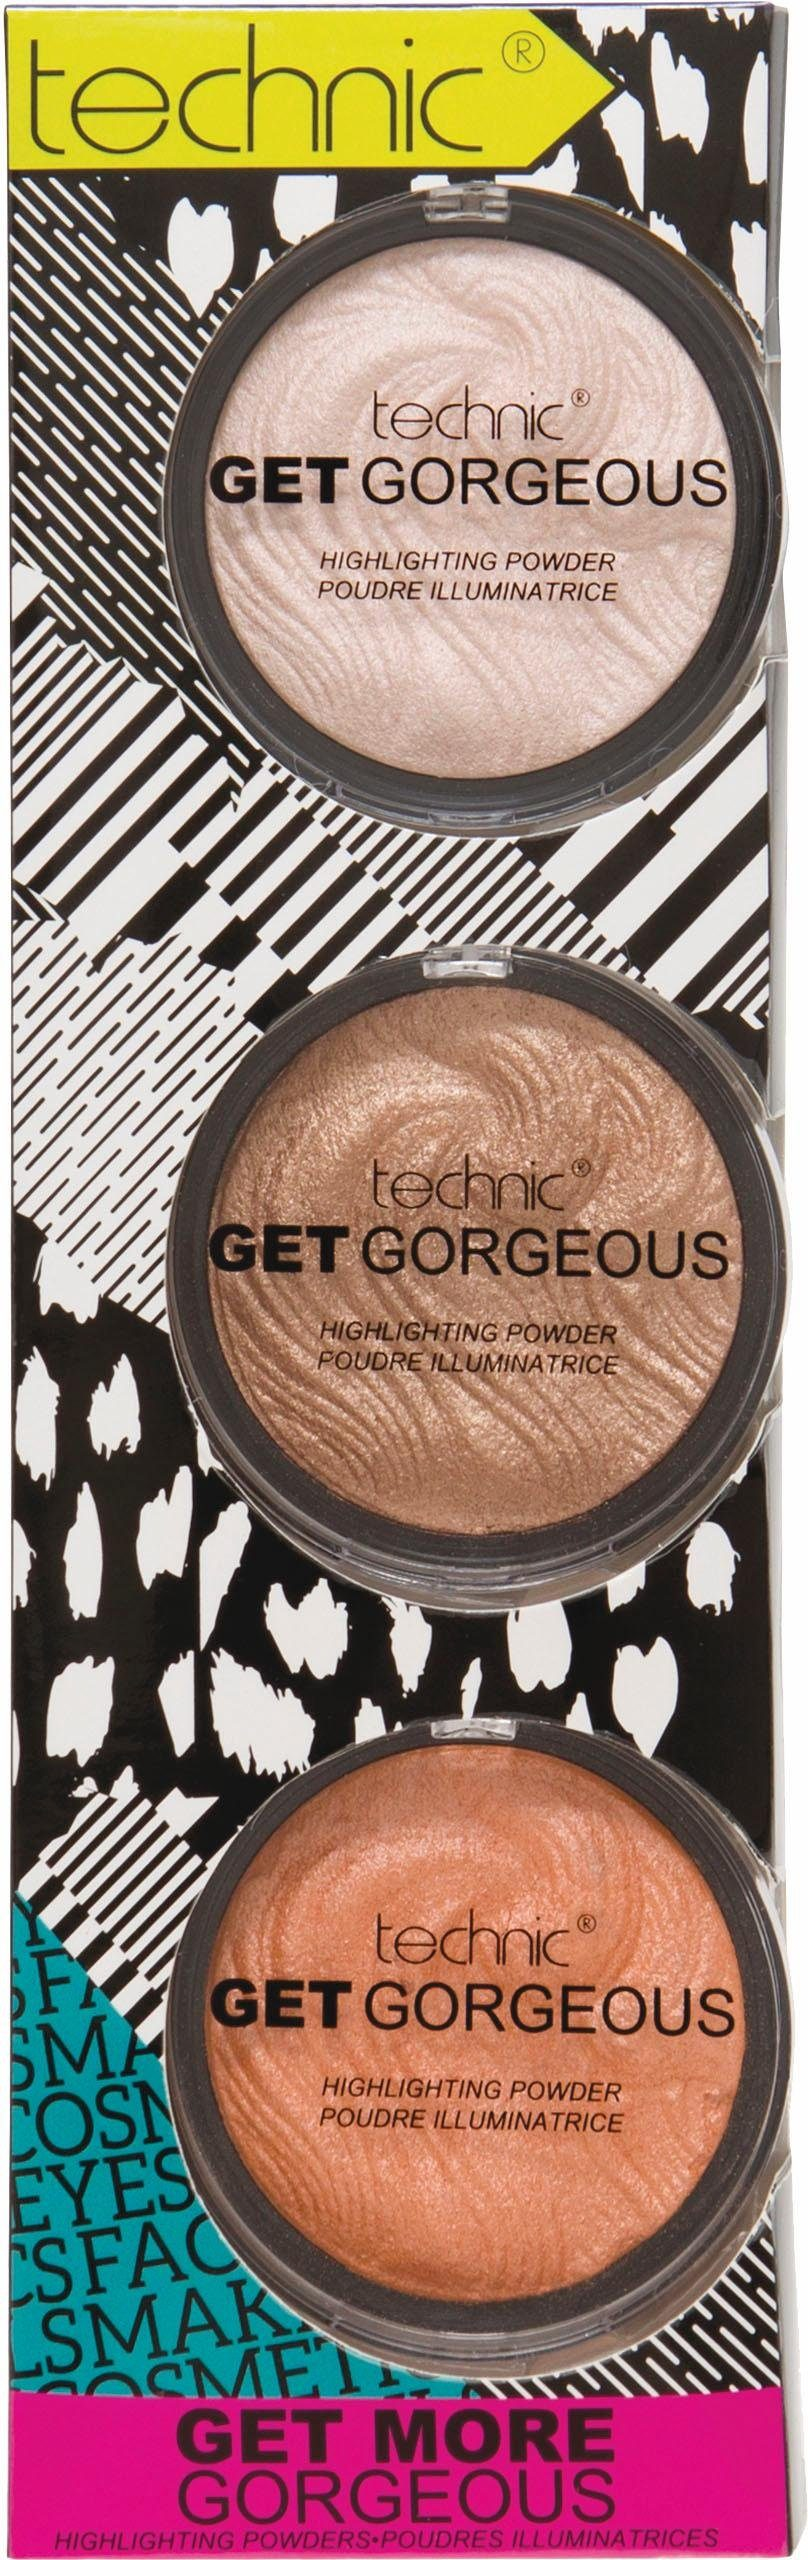 technic, »Get More Gorgeous«, Highlighter-Set